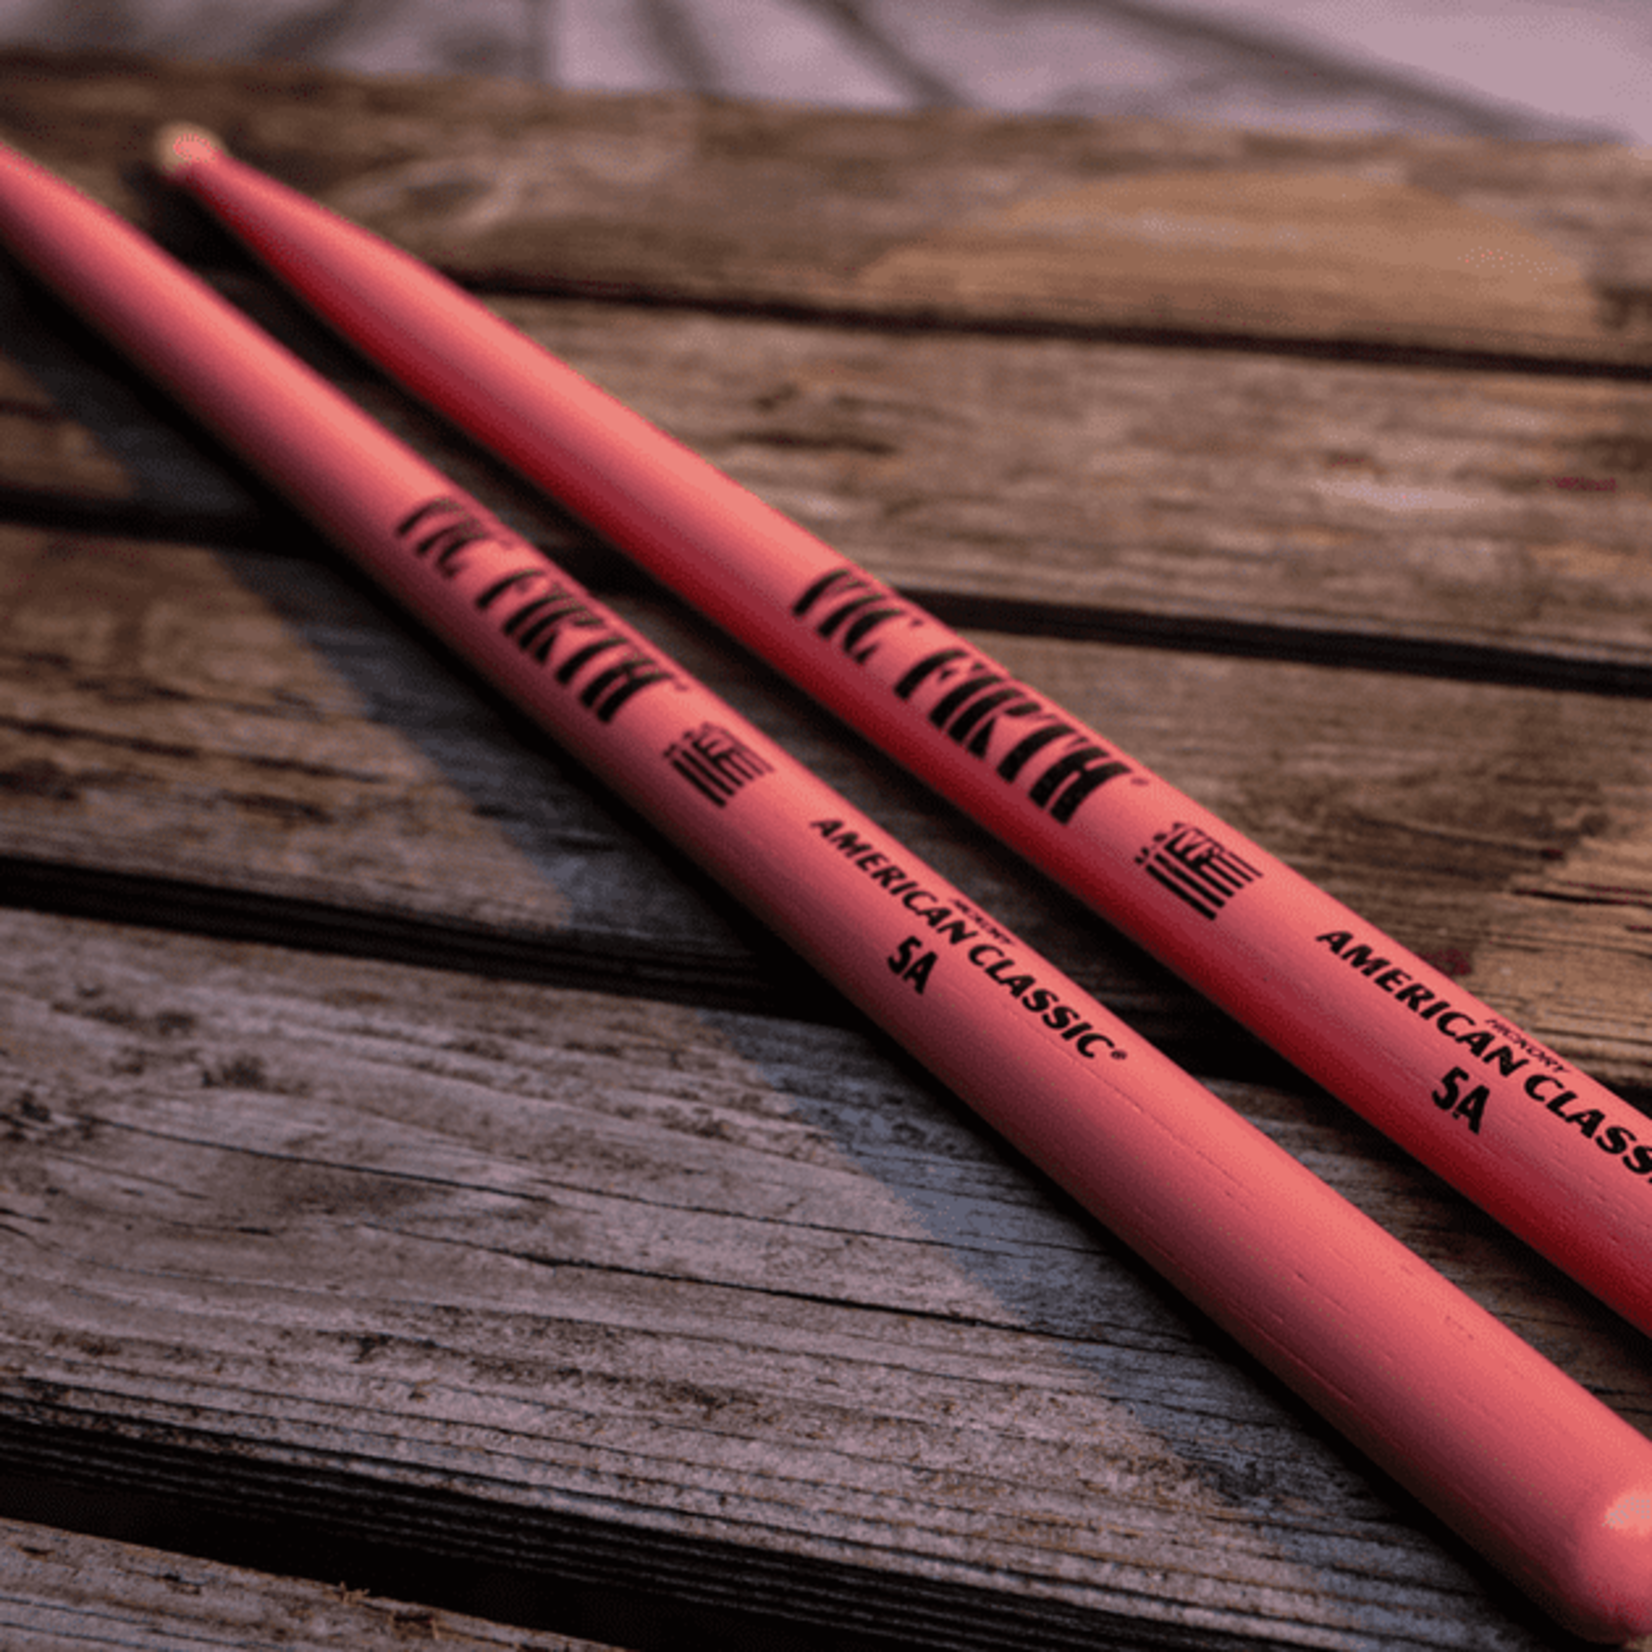 Vic Firth VIC FIRTH AMERICAN CLASSIC 5A PINK WOOD TIP (PAIR)